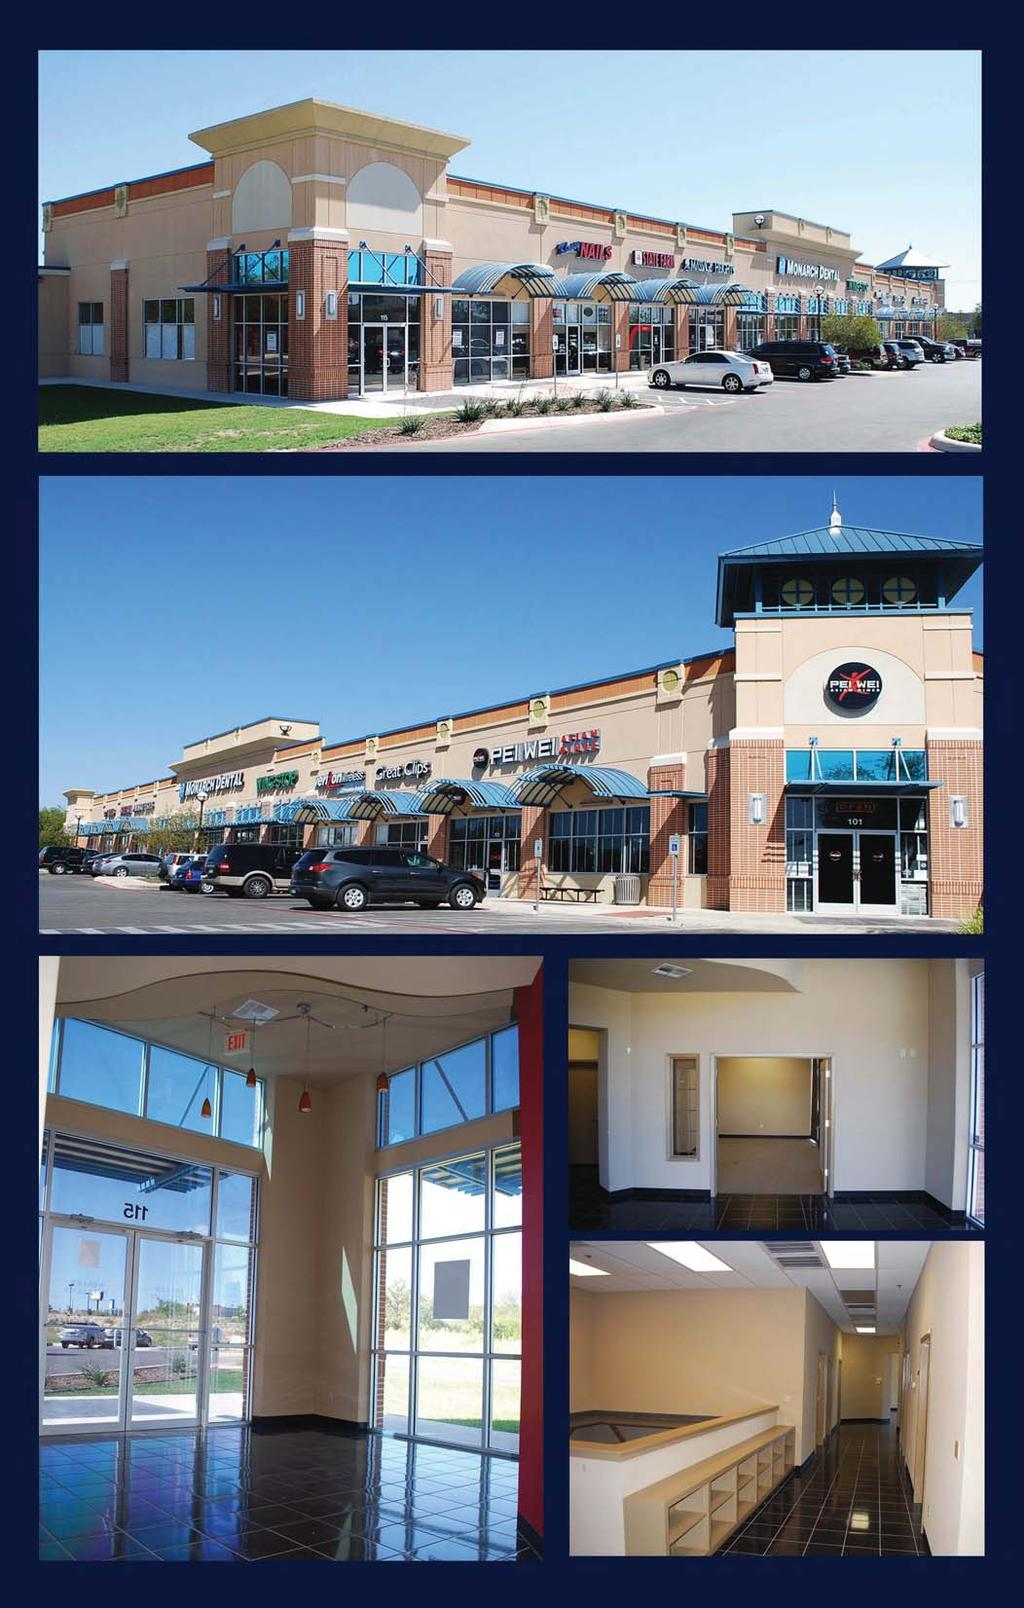 AVAILABLE SPACE SUITE 115-2,110 +/- SF AVAILABLE SPACE